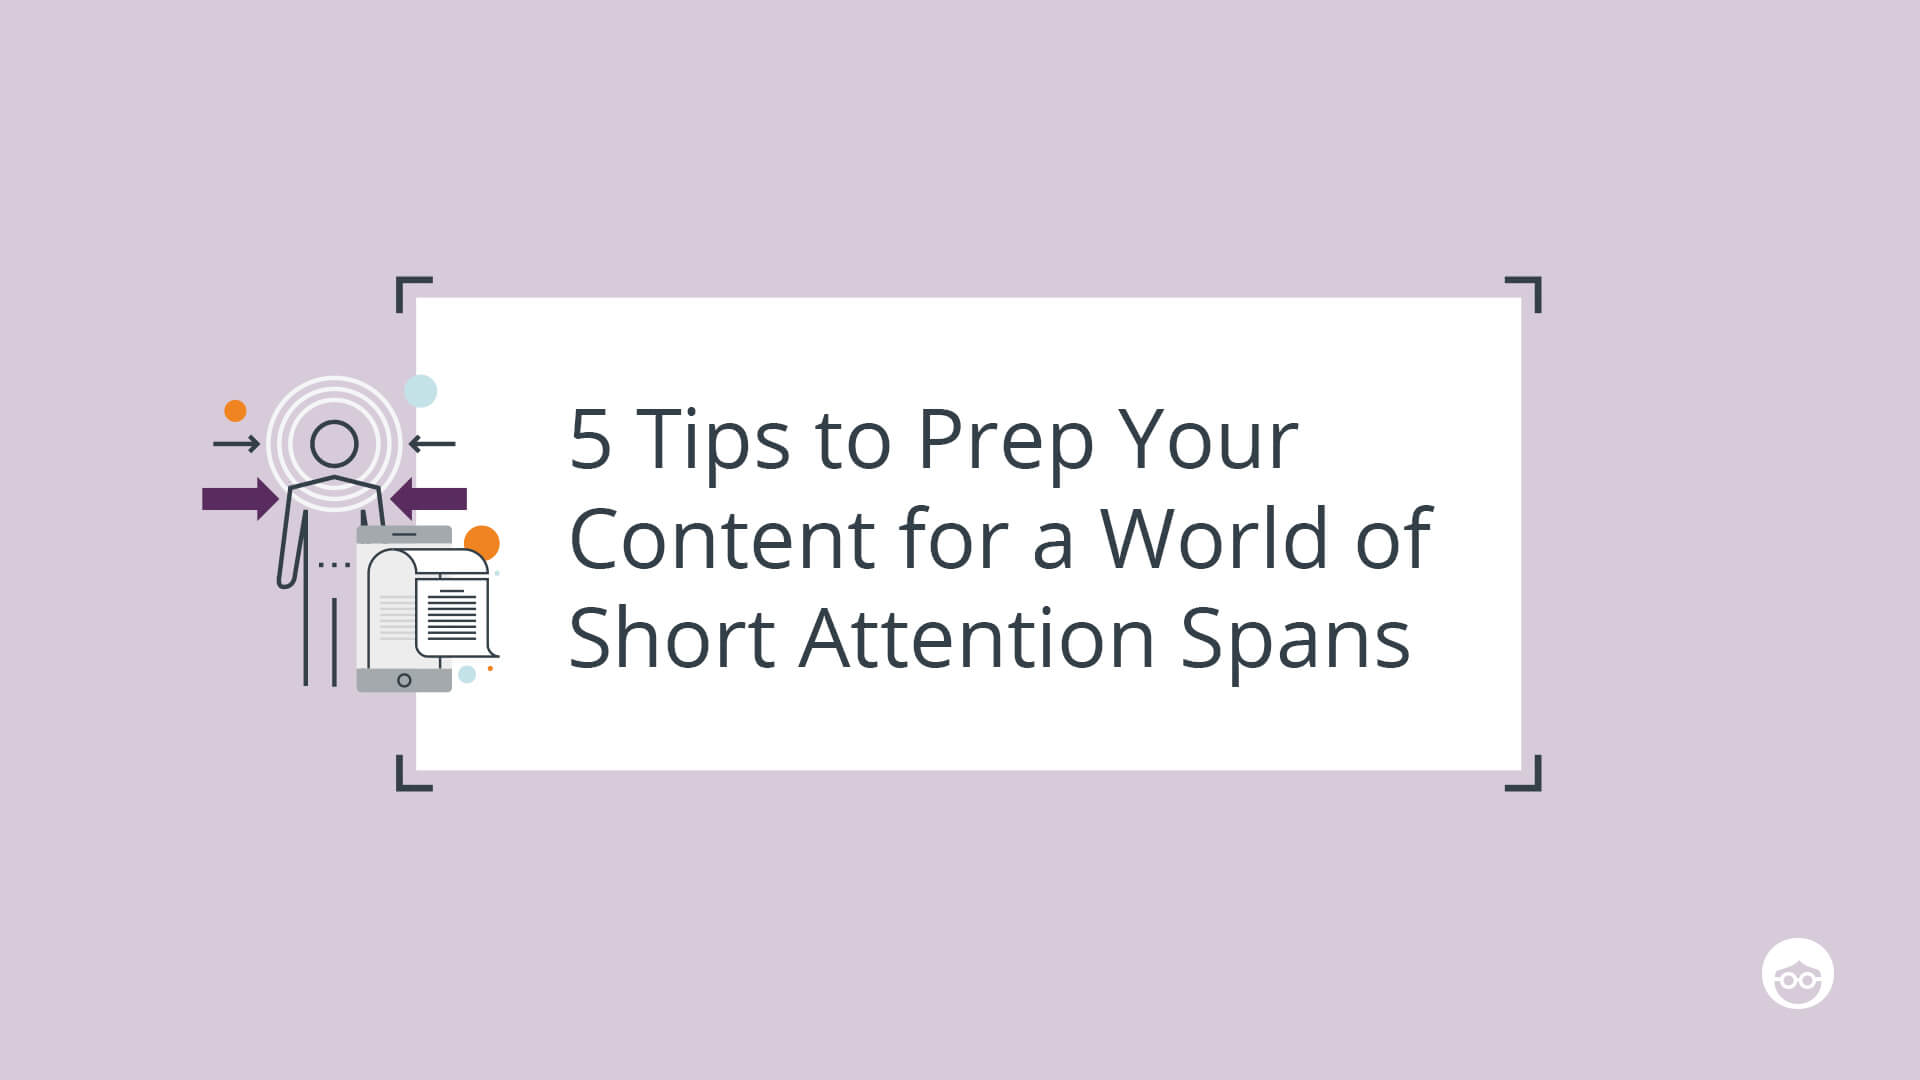 Prepping your content for a world of short attention spans